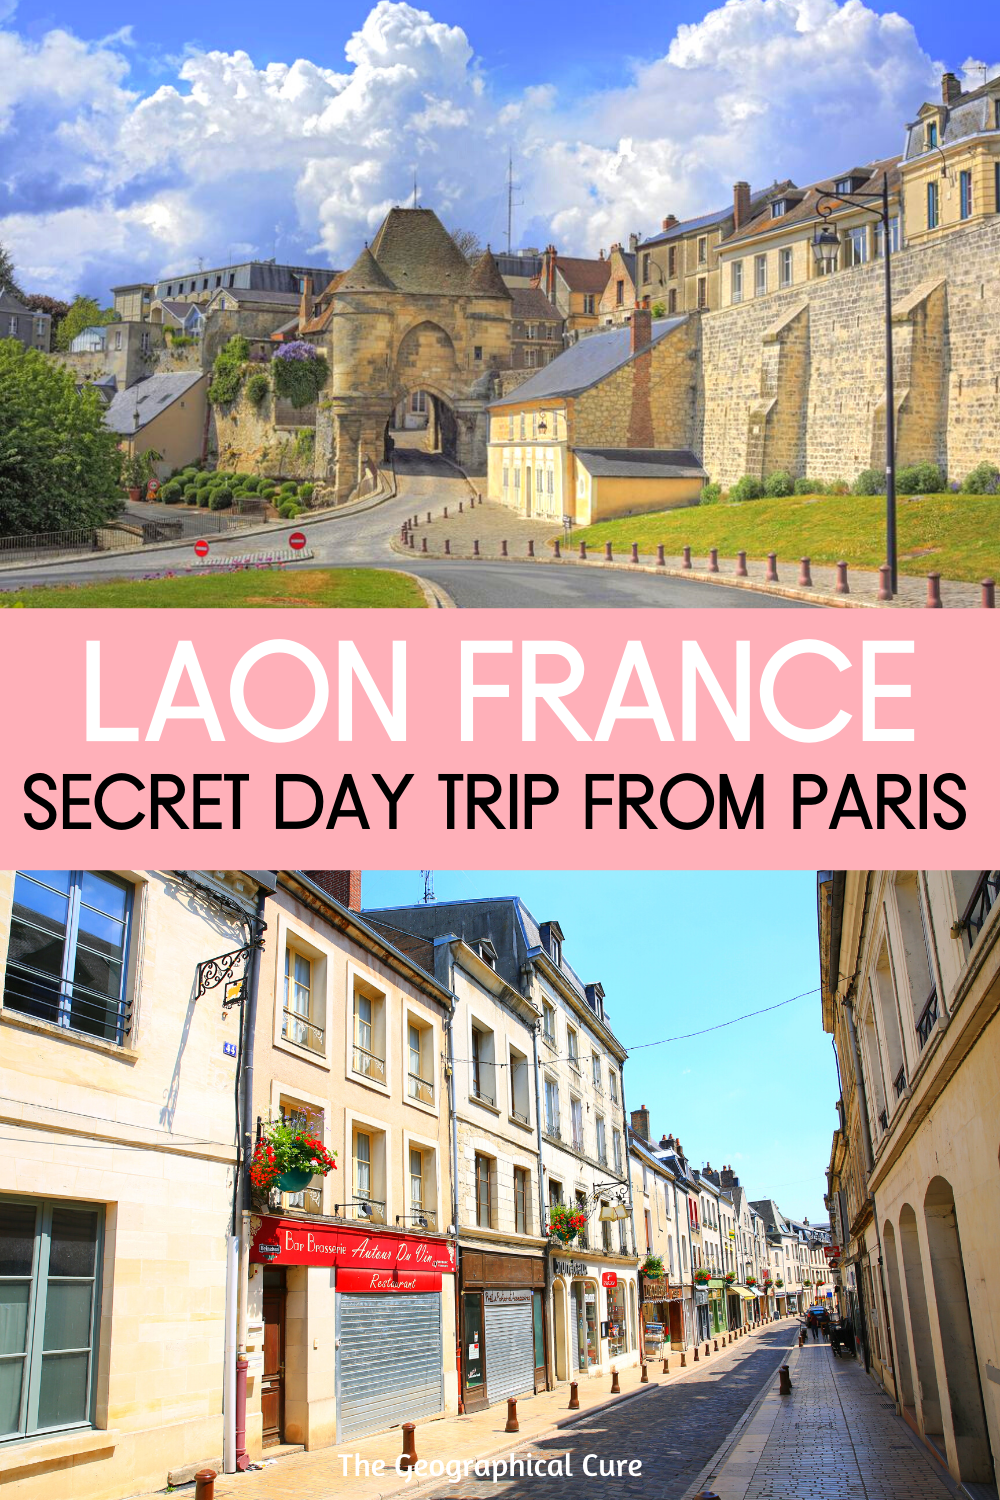 Guide To Visiting Laon France, a Secret day Trip From Paris